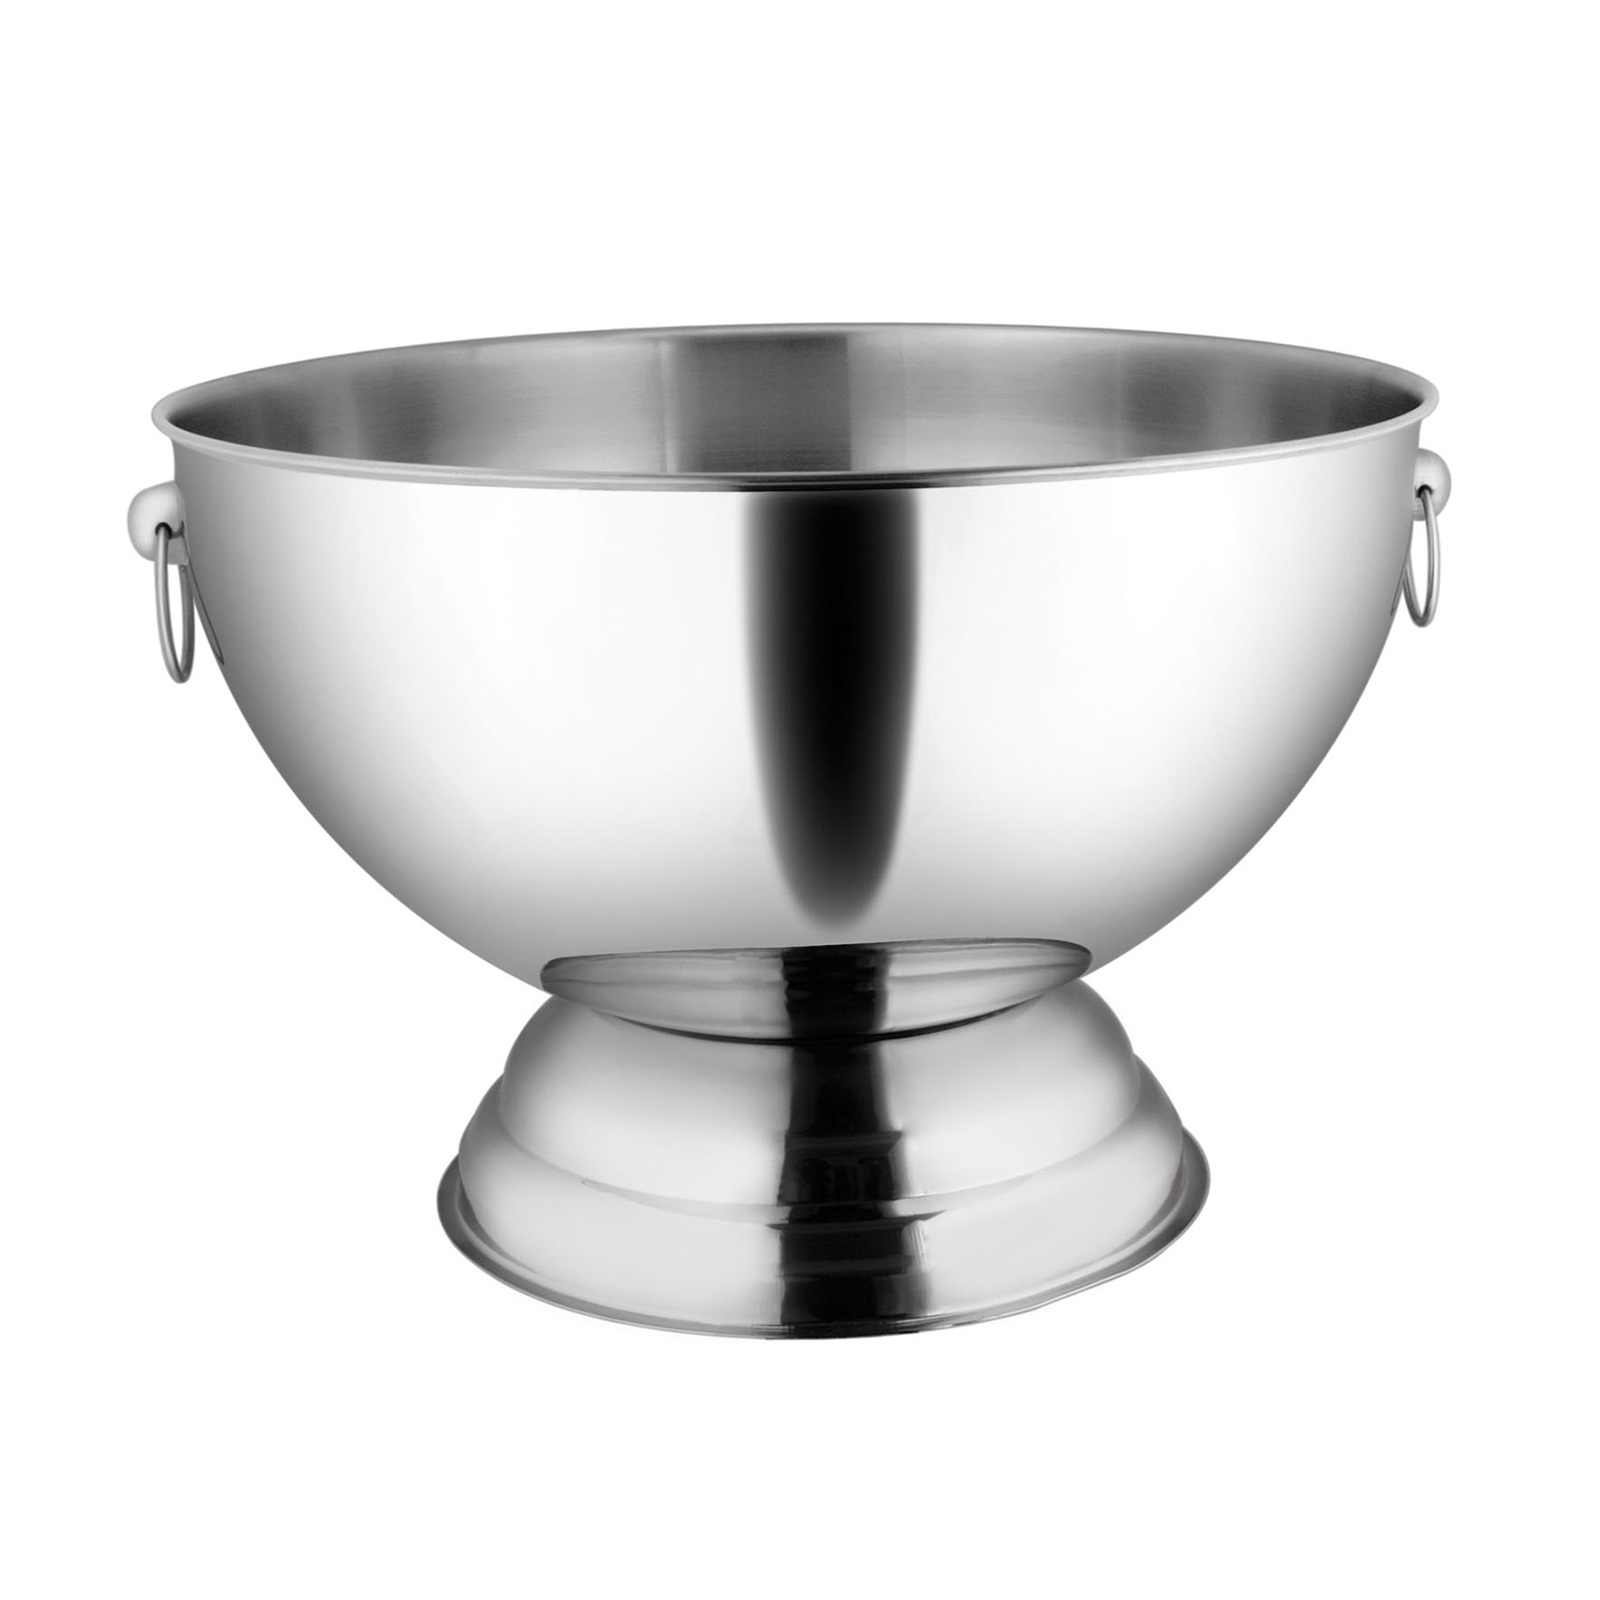 Winco SPB-35 punch bowl, metal